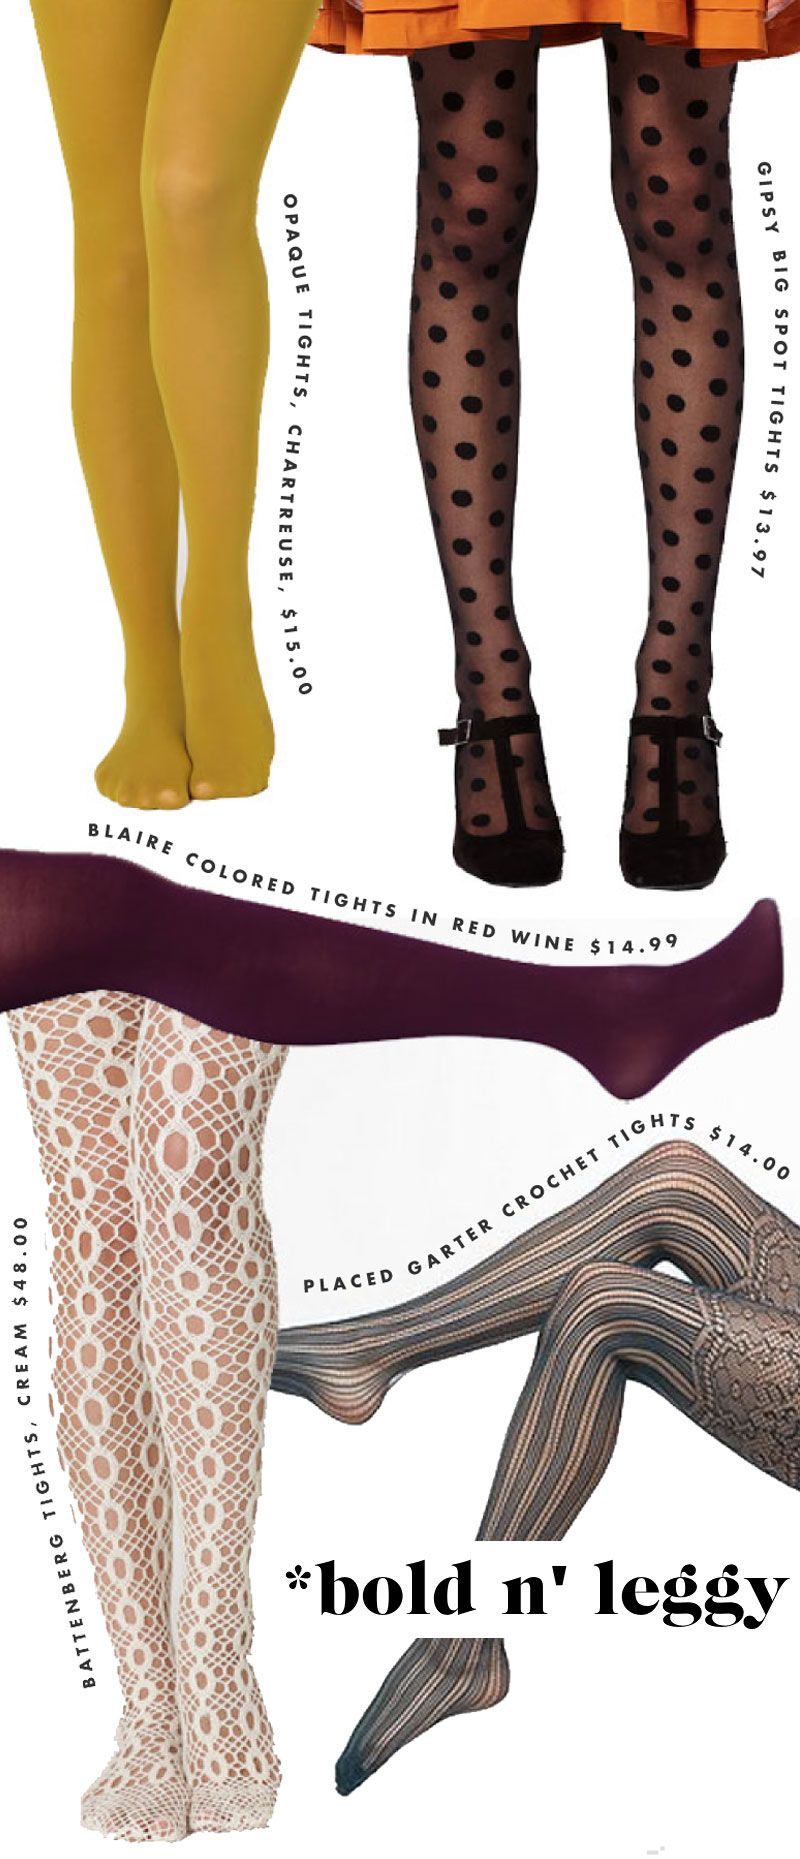 Totally my style! I adore tights.